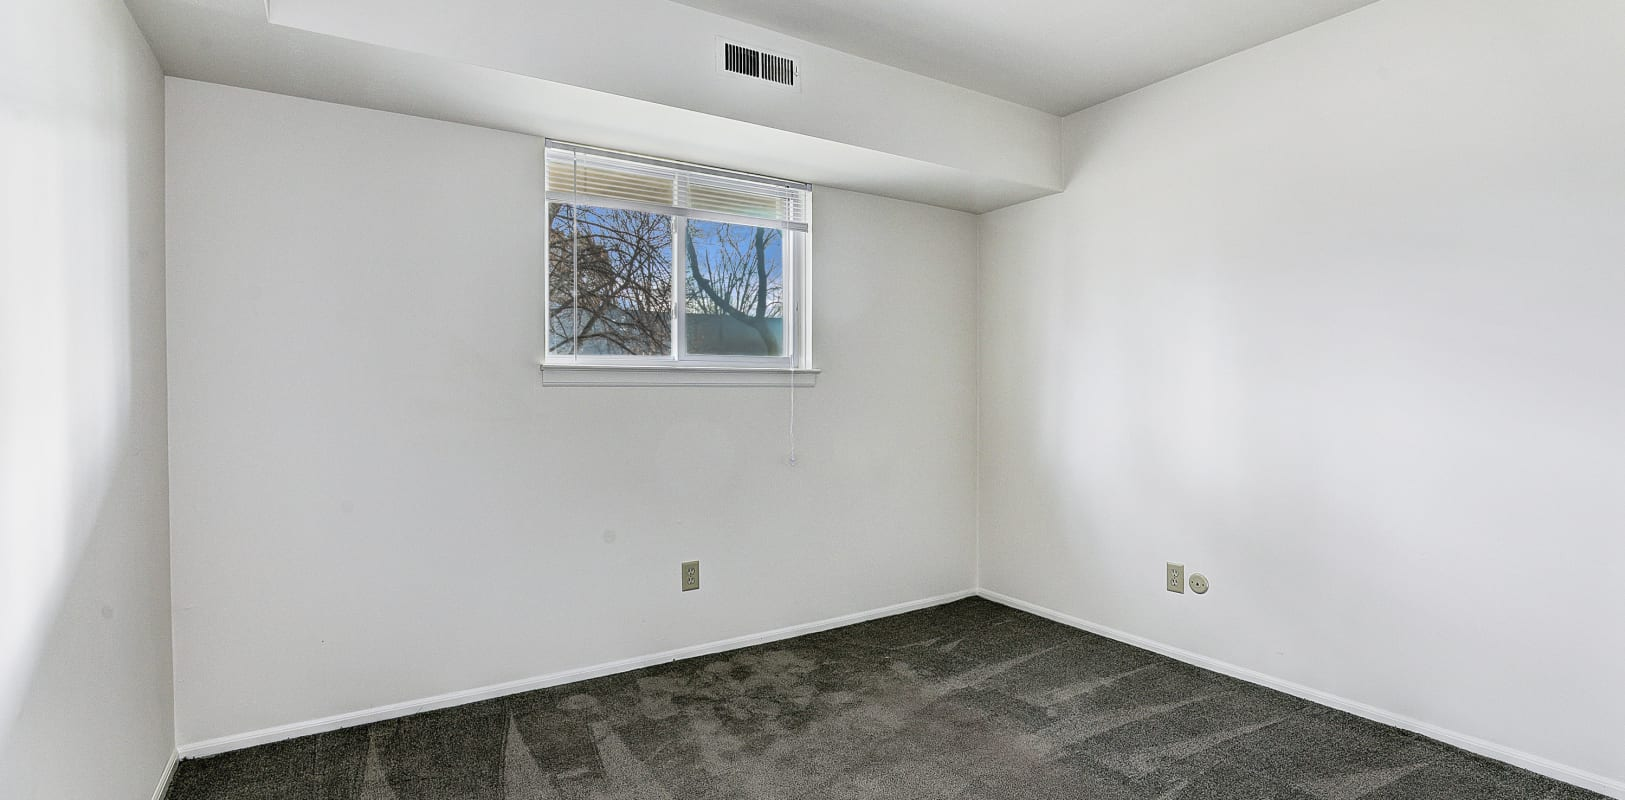 Carpeted bedroom with white walls at Penn Crest Apartments in Allentown, Pennsylvania